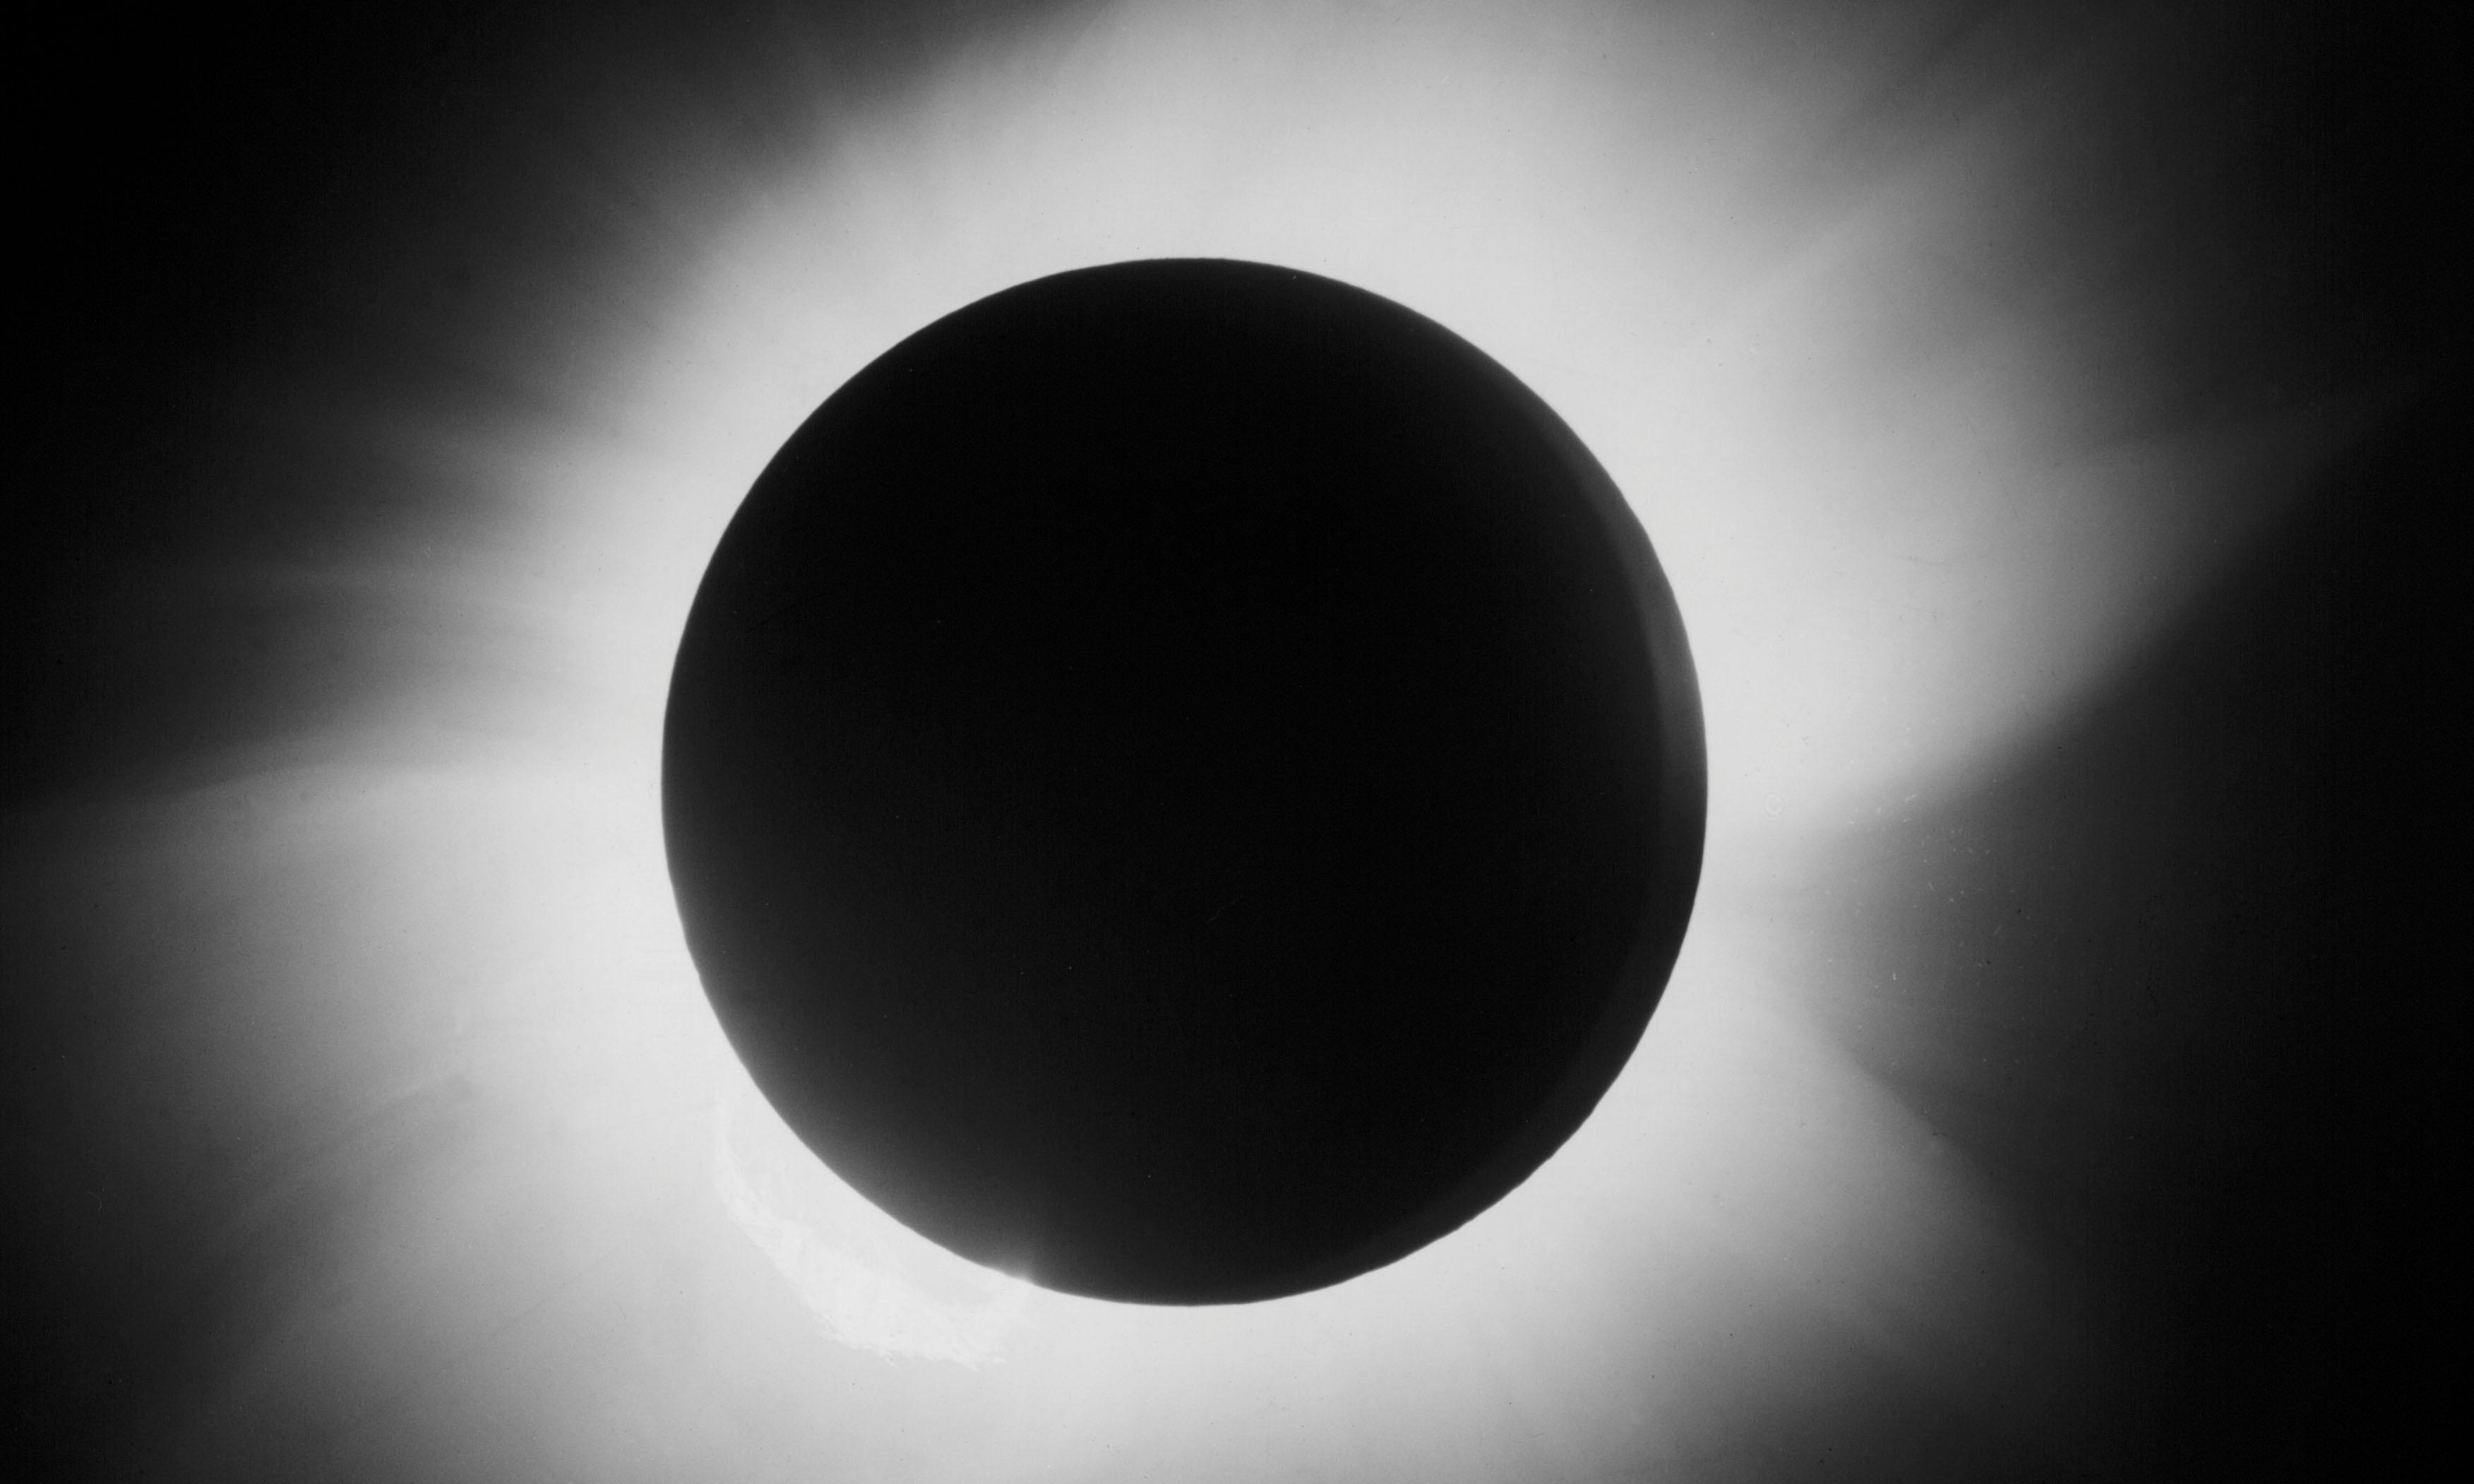 100 years on: the pictures that changed our view of the universe